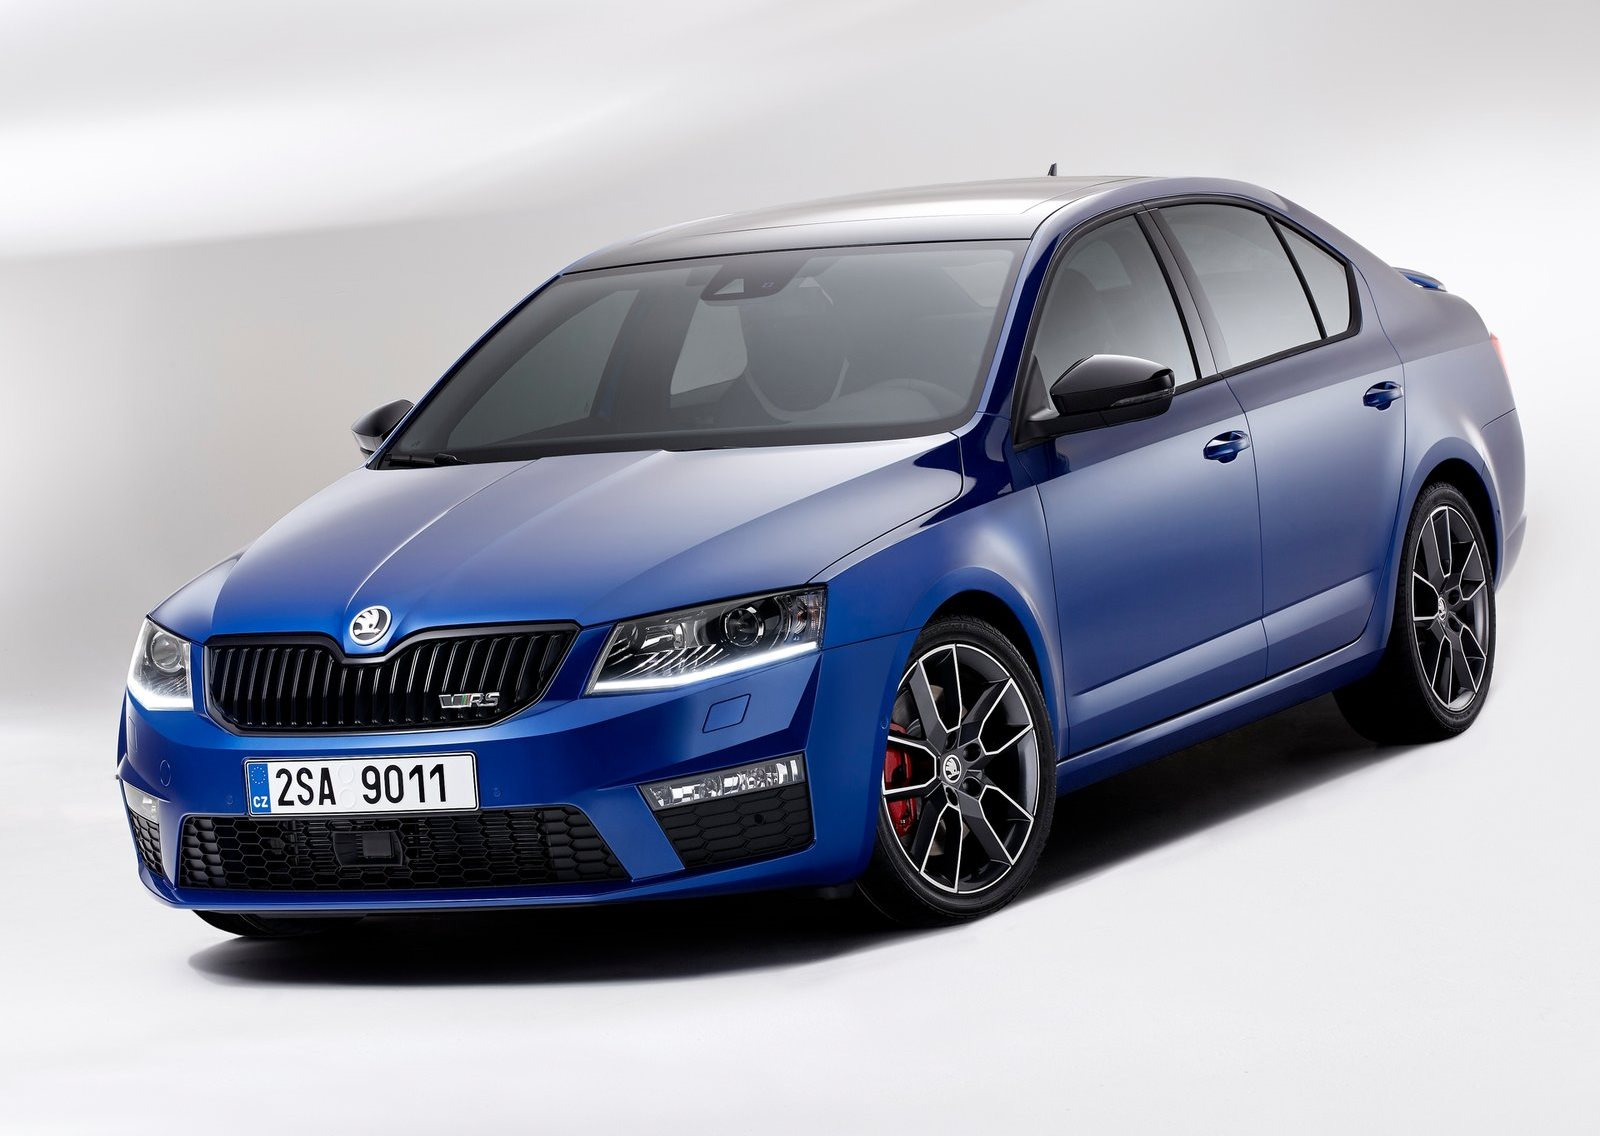 2014 skoda octavia rs showing skoda octavia rs 2014. Black Bedroom Furniture Sets. Home Design Ideas